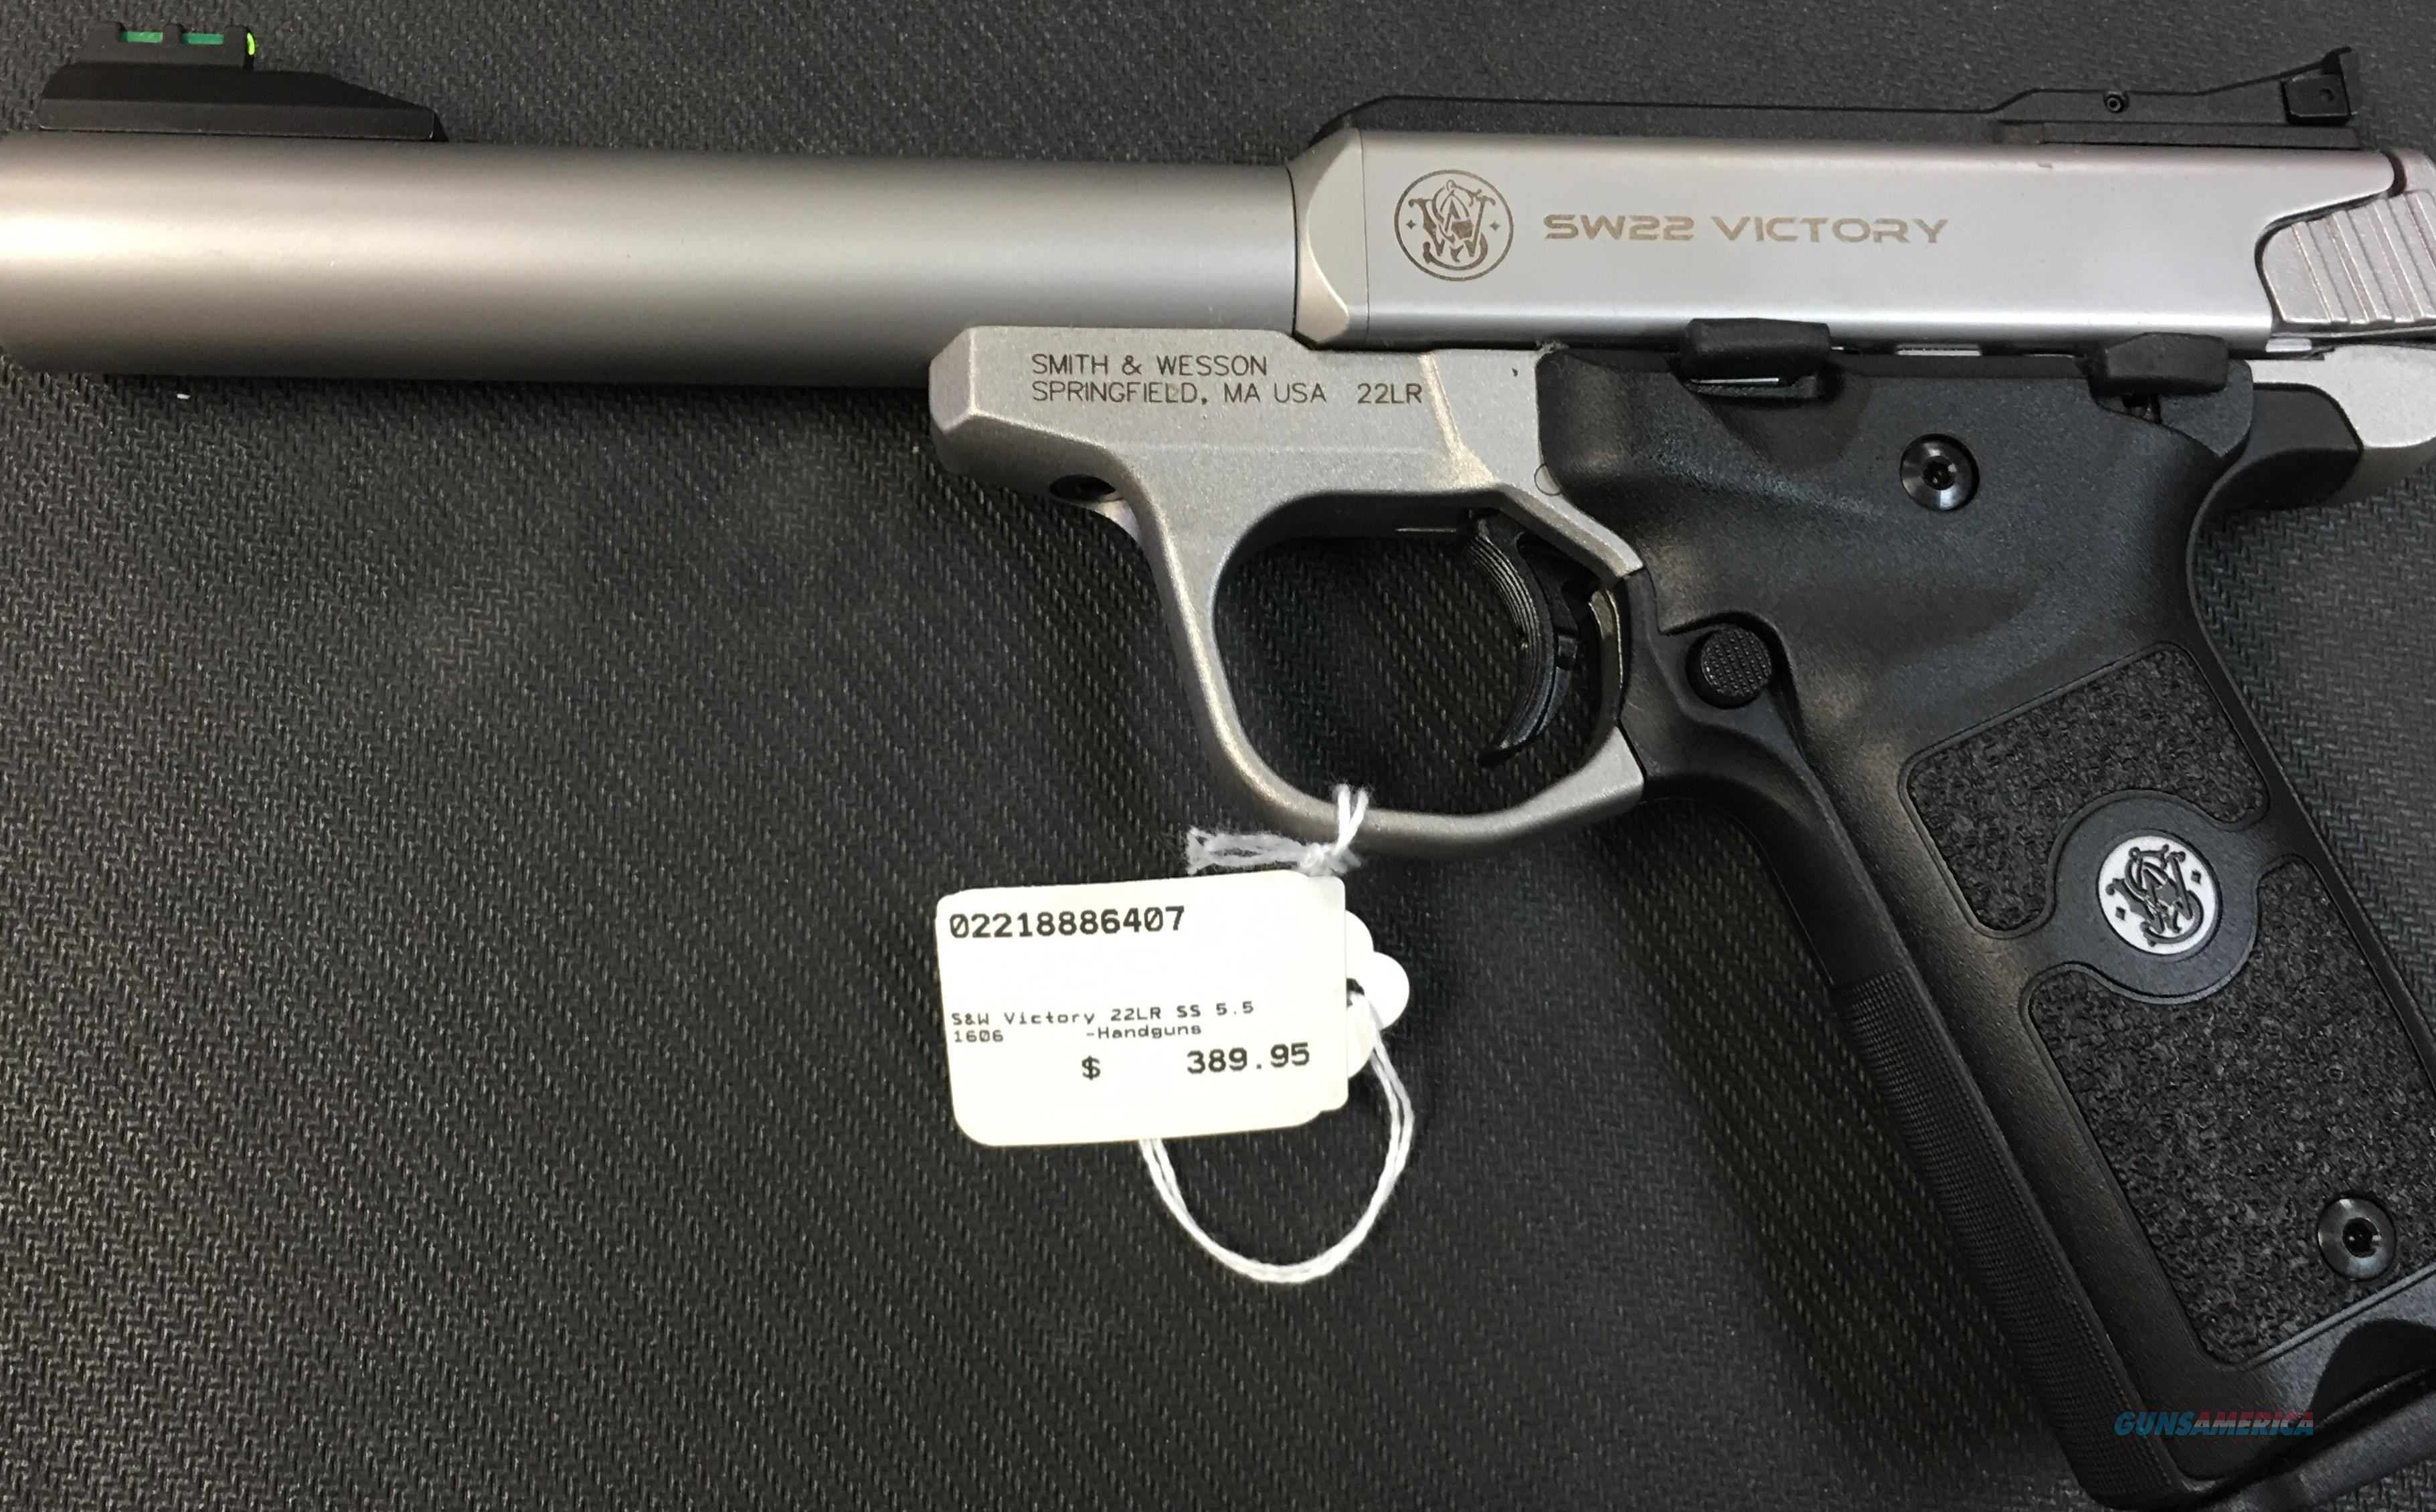 Smith & Wesson Victory 22 NIB NO CC FEES  Guns > Pistols > Smith & Wesson Pistols - Autos > .22 Autos